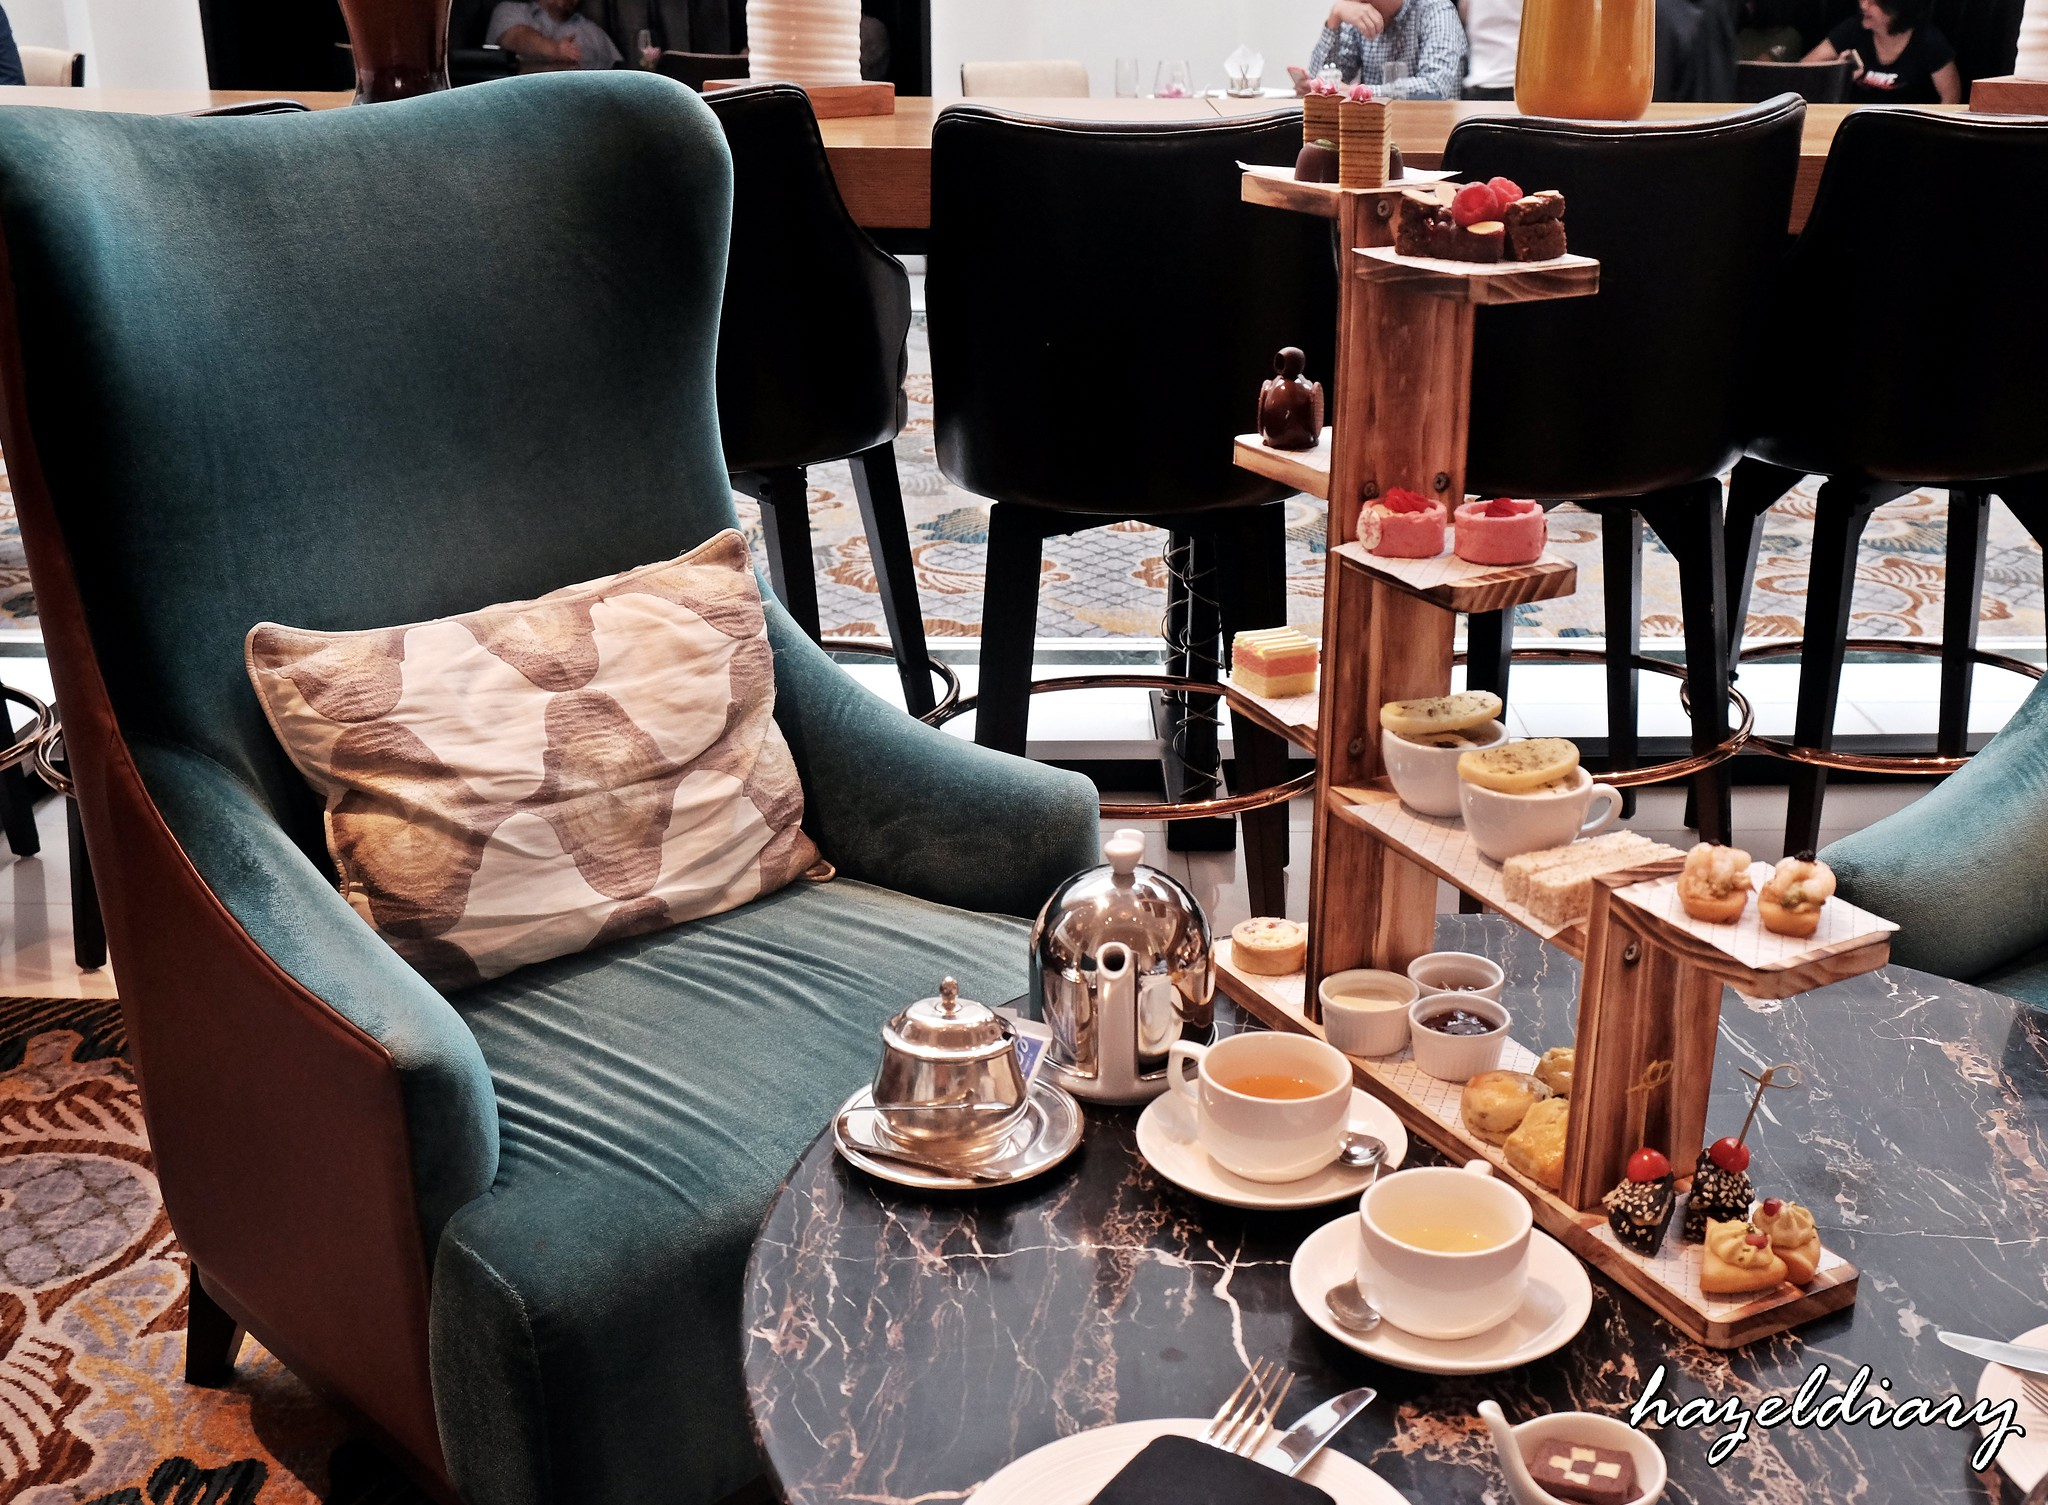 [SG EATS] Classic Afternoon Tea At The Lobby Lounge | Hotel InterContinental Singapore